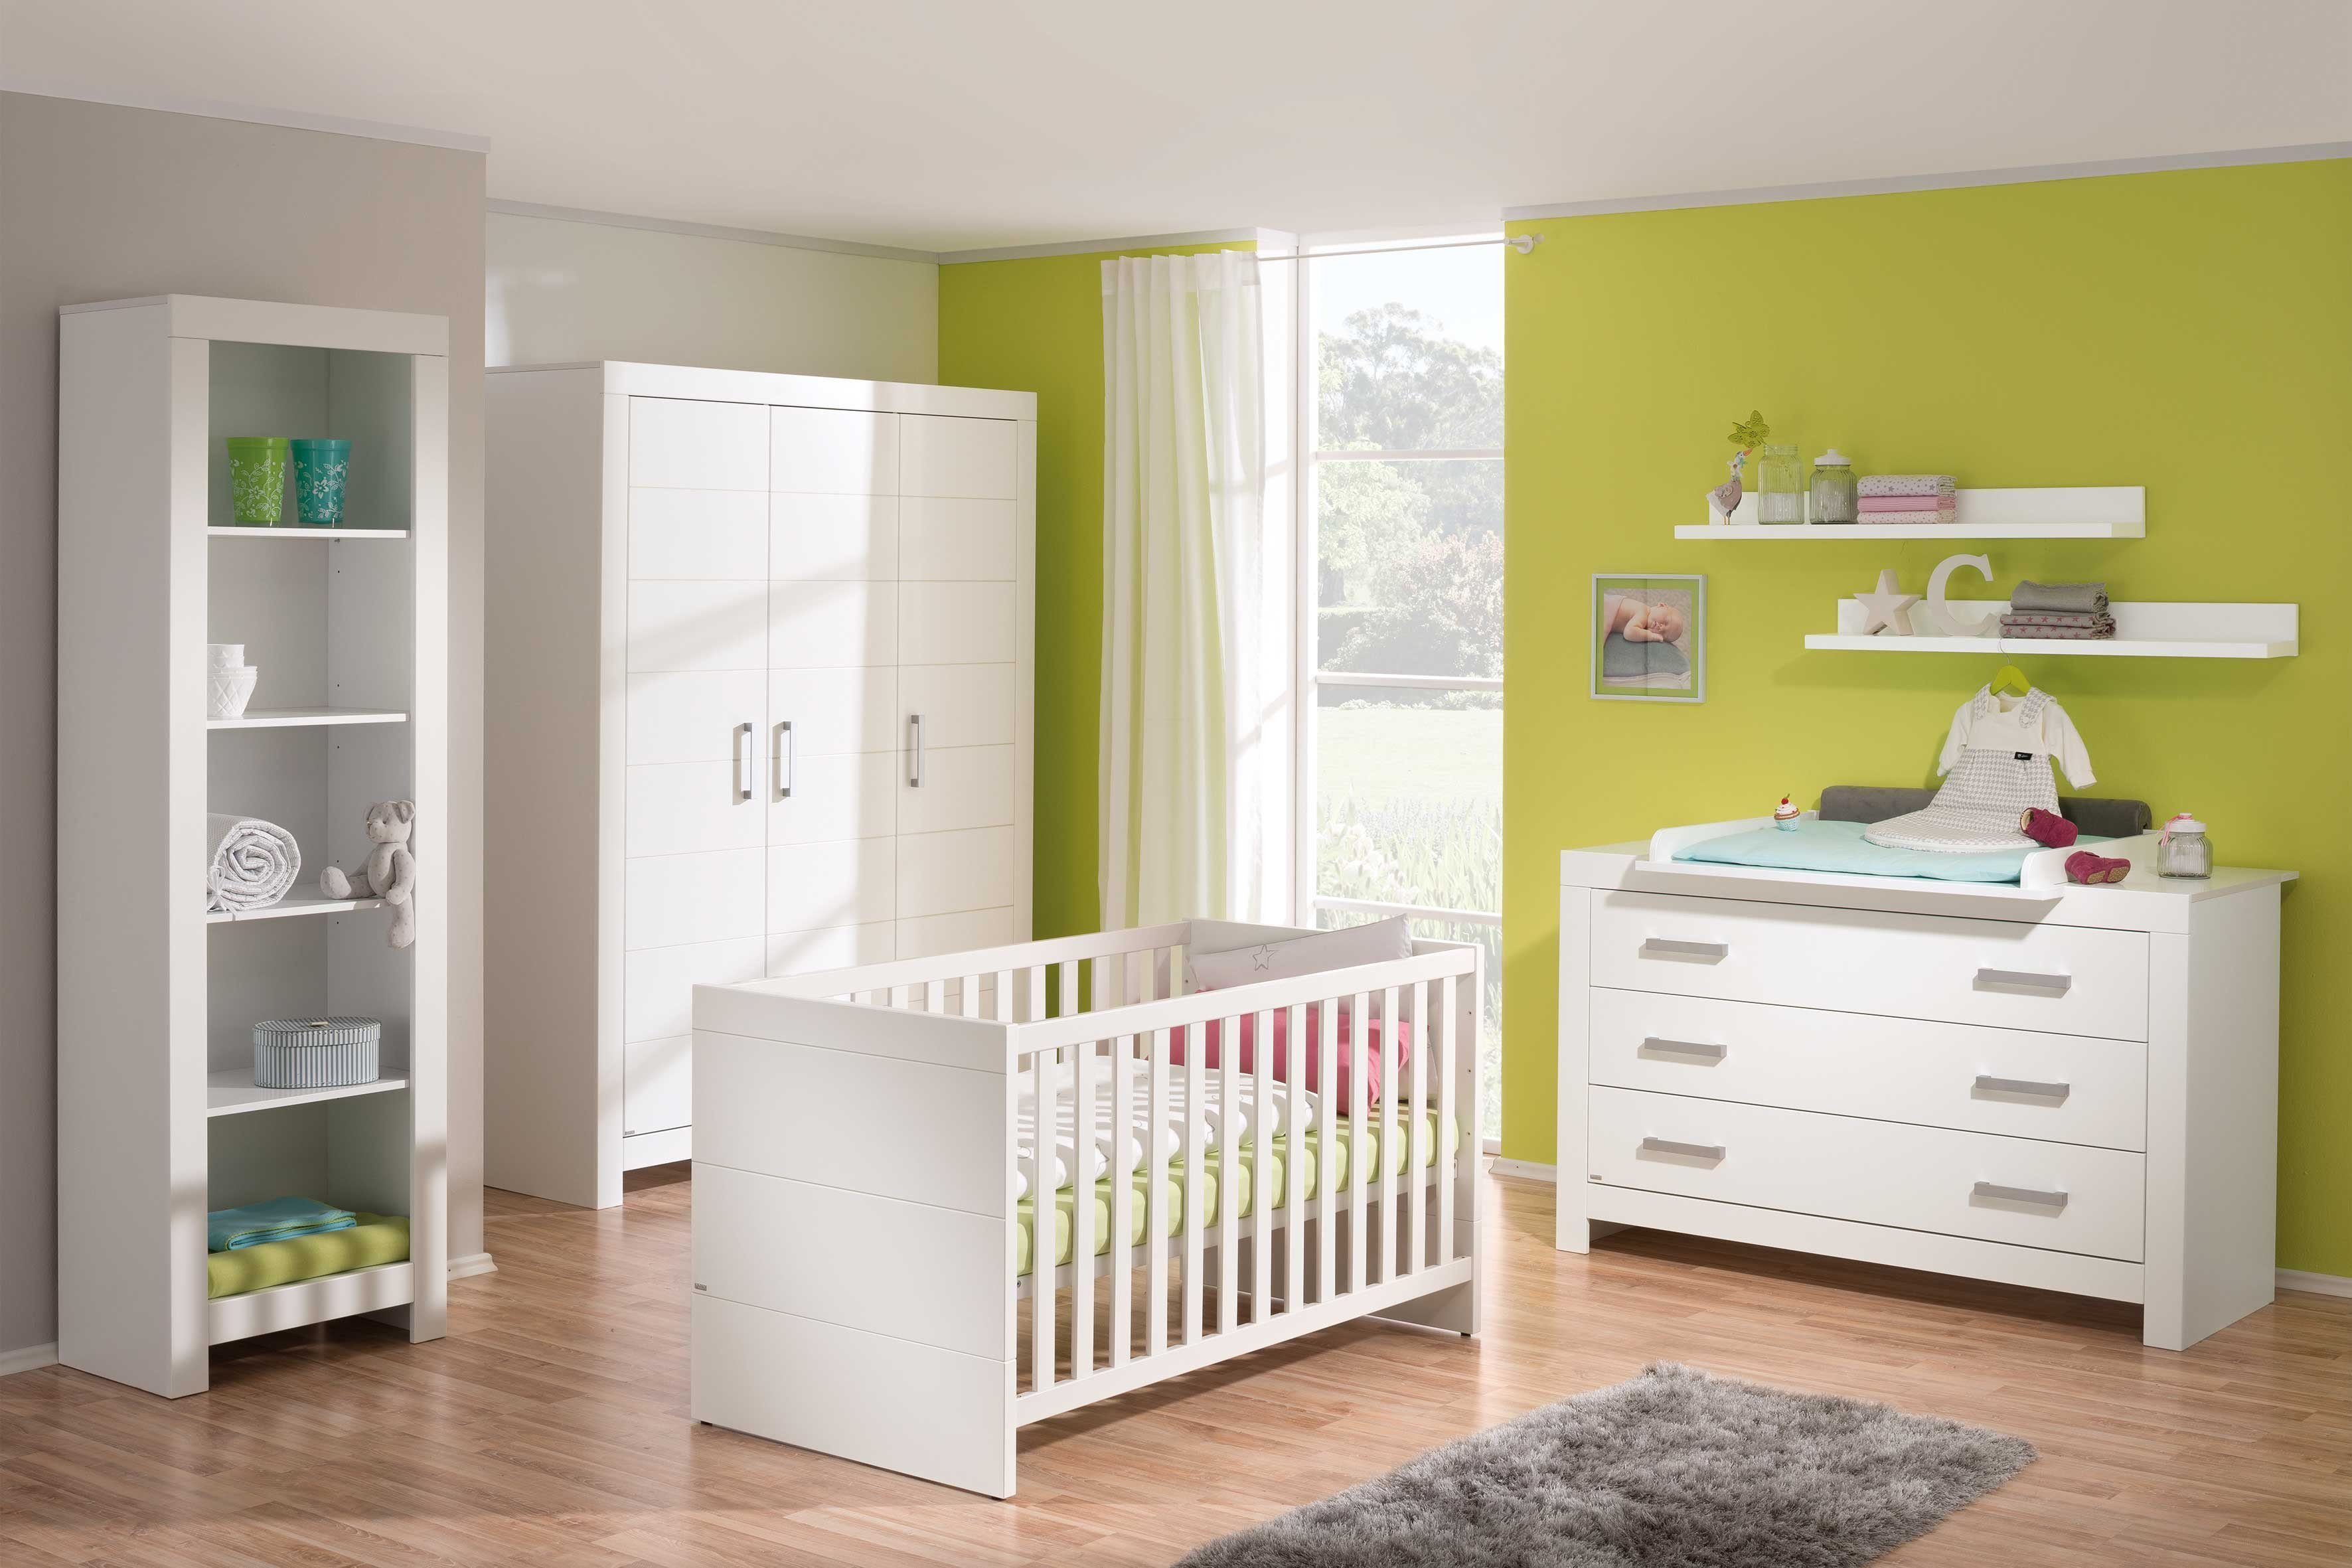 paidi babyzimmer fiona kreidewei m bel letz ihr online shop. Black Bedroom Furniture Sets. Home Design Ideas